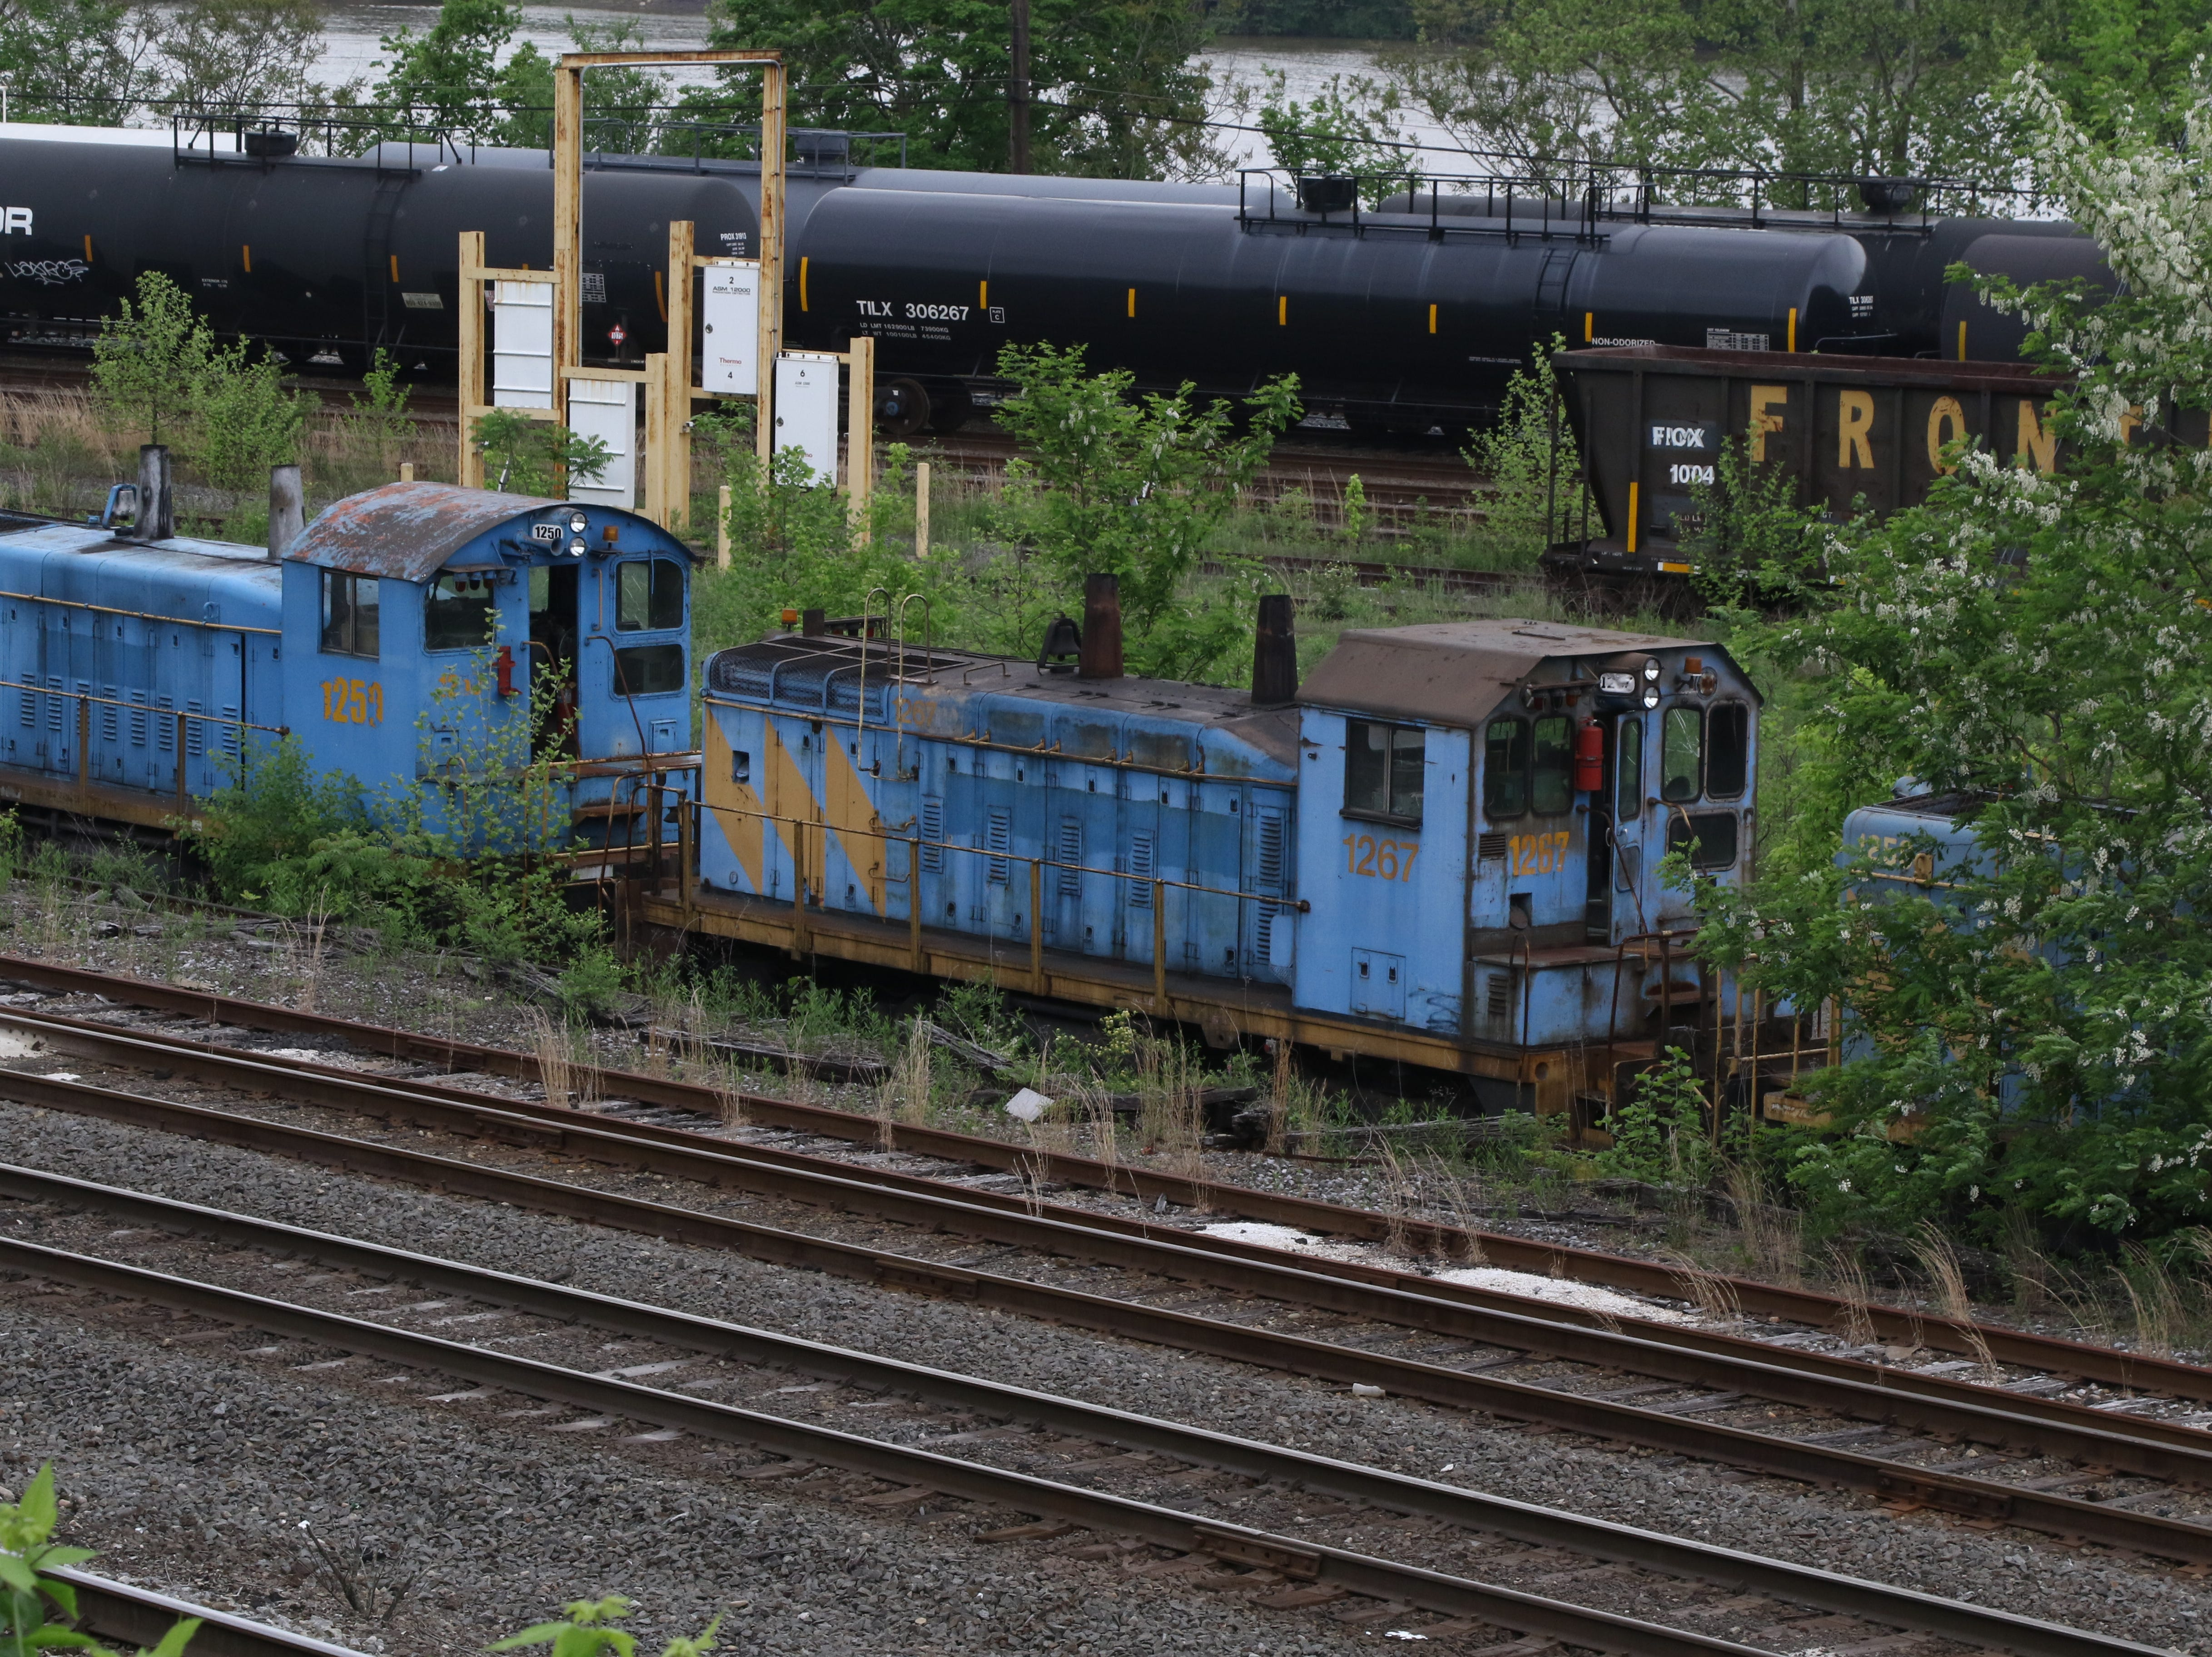 Over grown weeds and shrubs surround what is left of trains that once were part of a thriving steel industry.